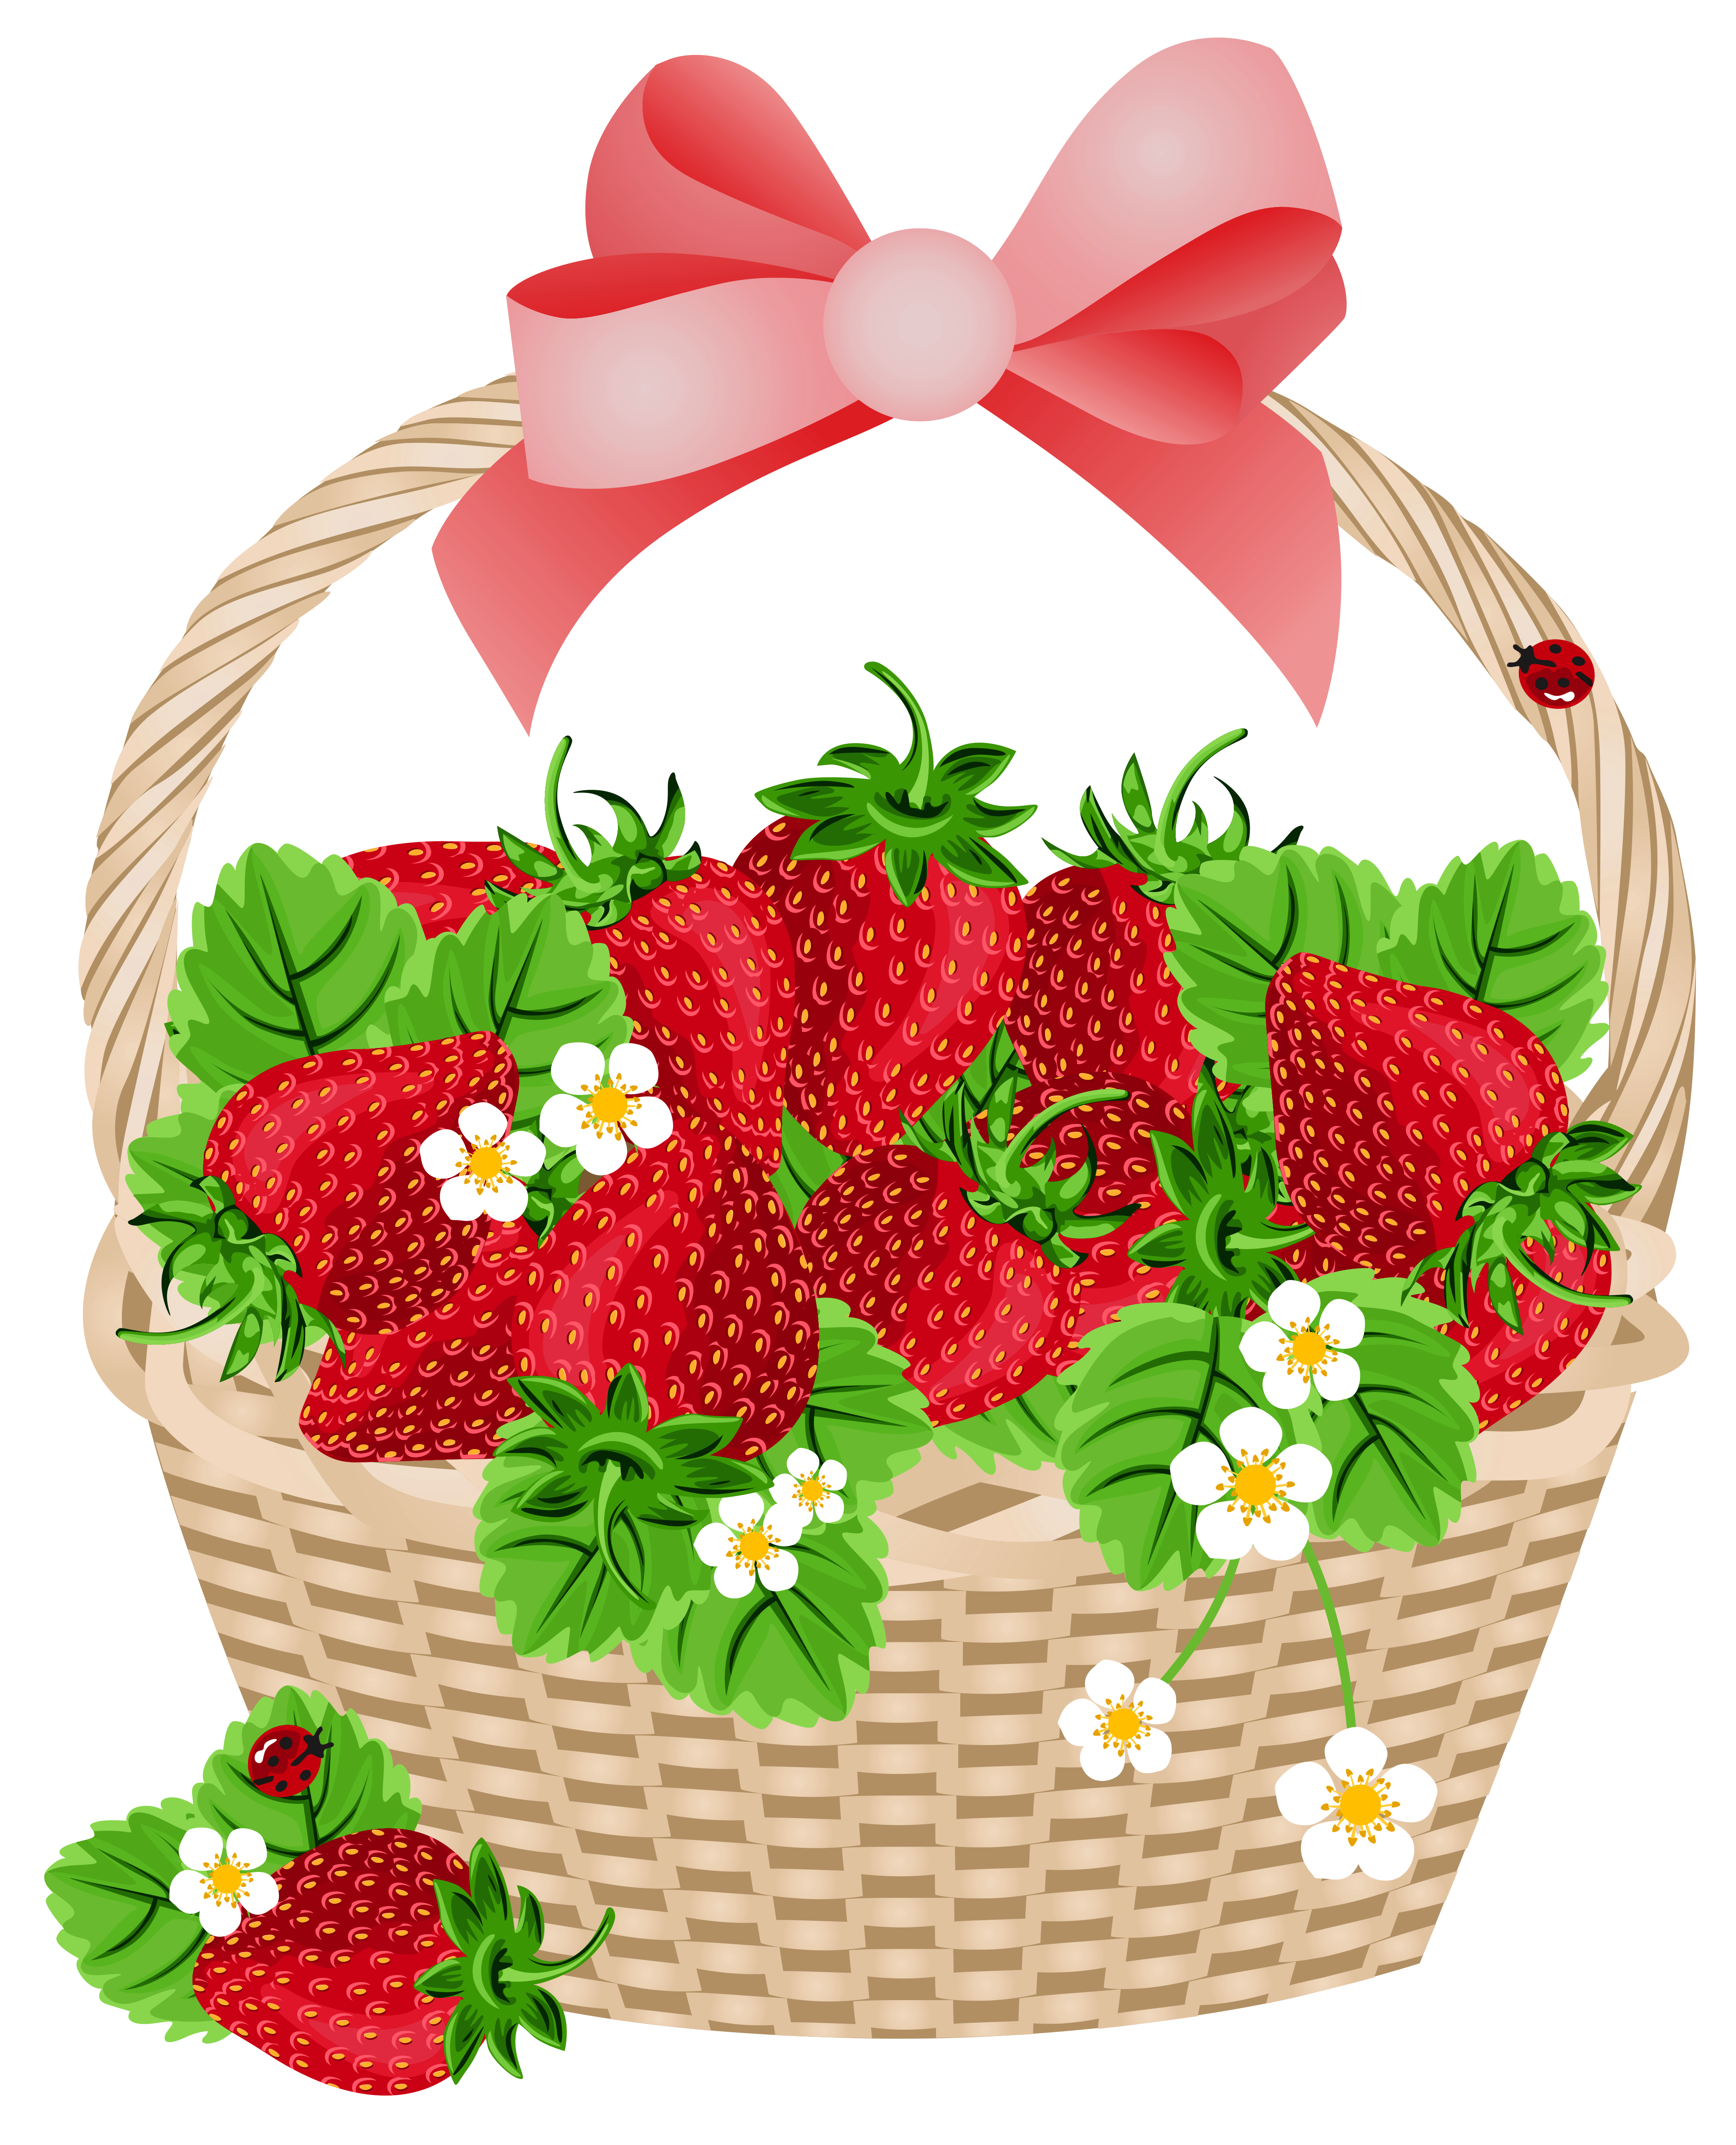 Fruit clip art with. Strawberries clipart strawberry basket